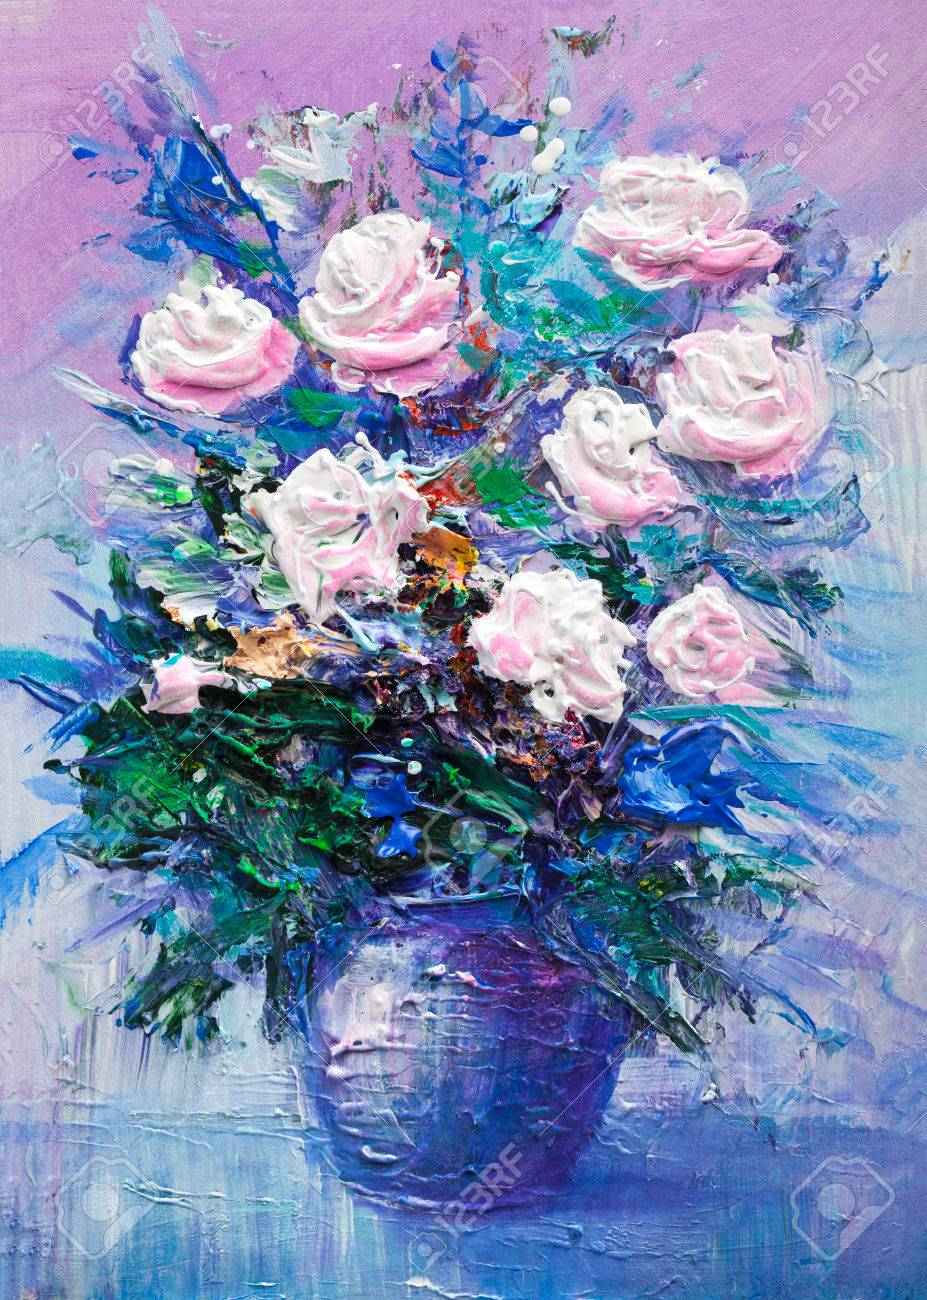 Oil Painting A Bouquet Of Flowers Impressionist Style Stock Photo